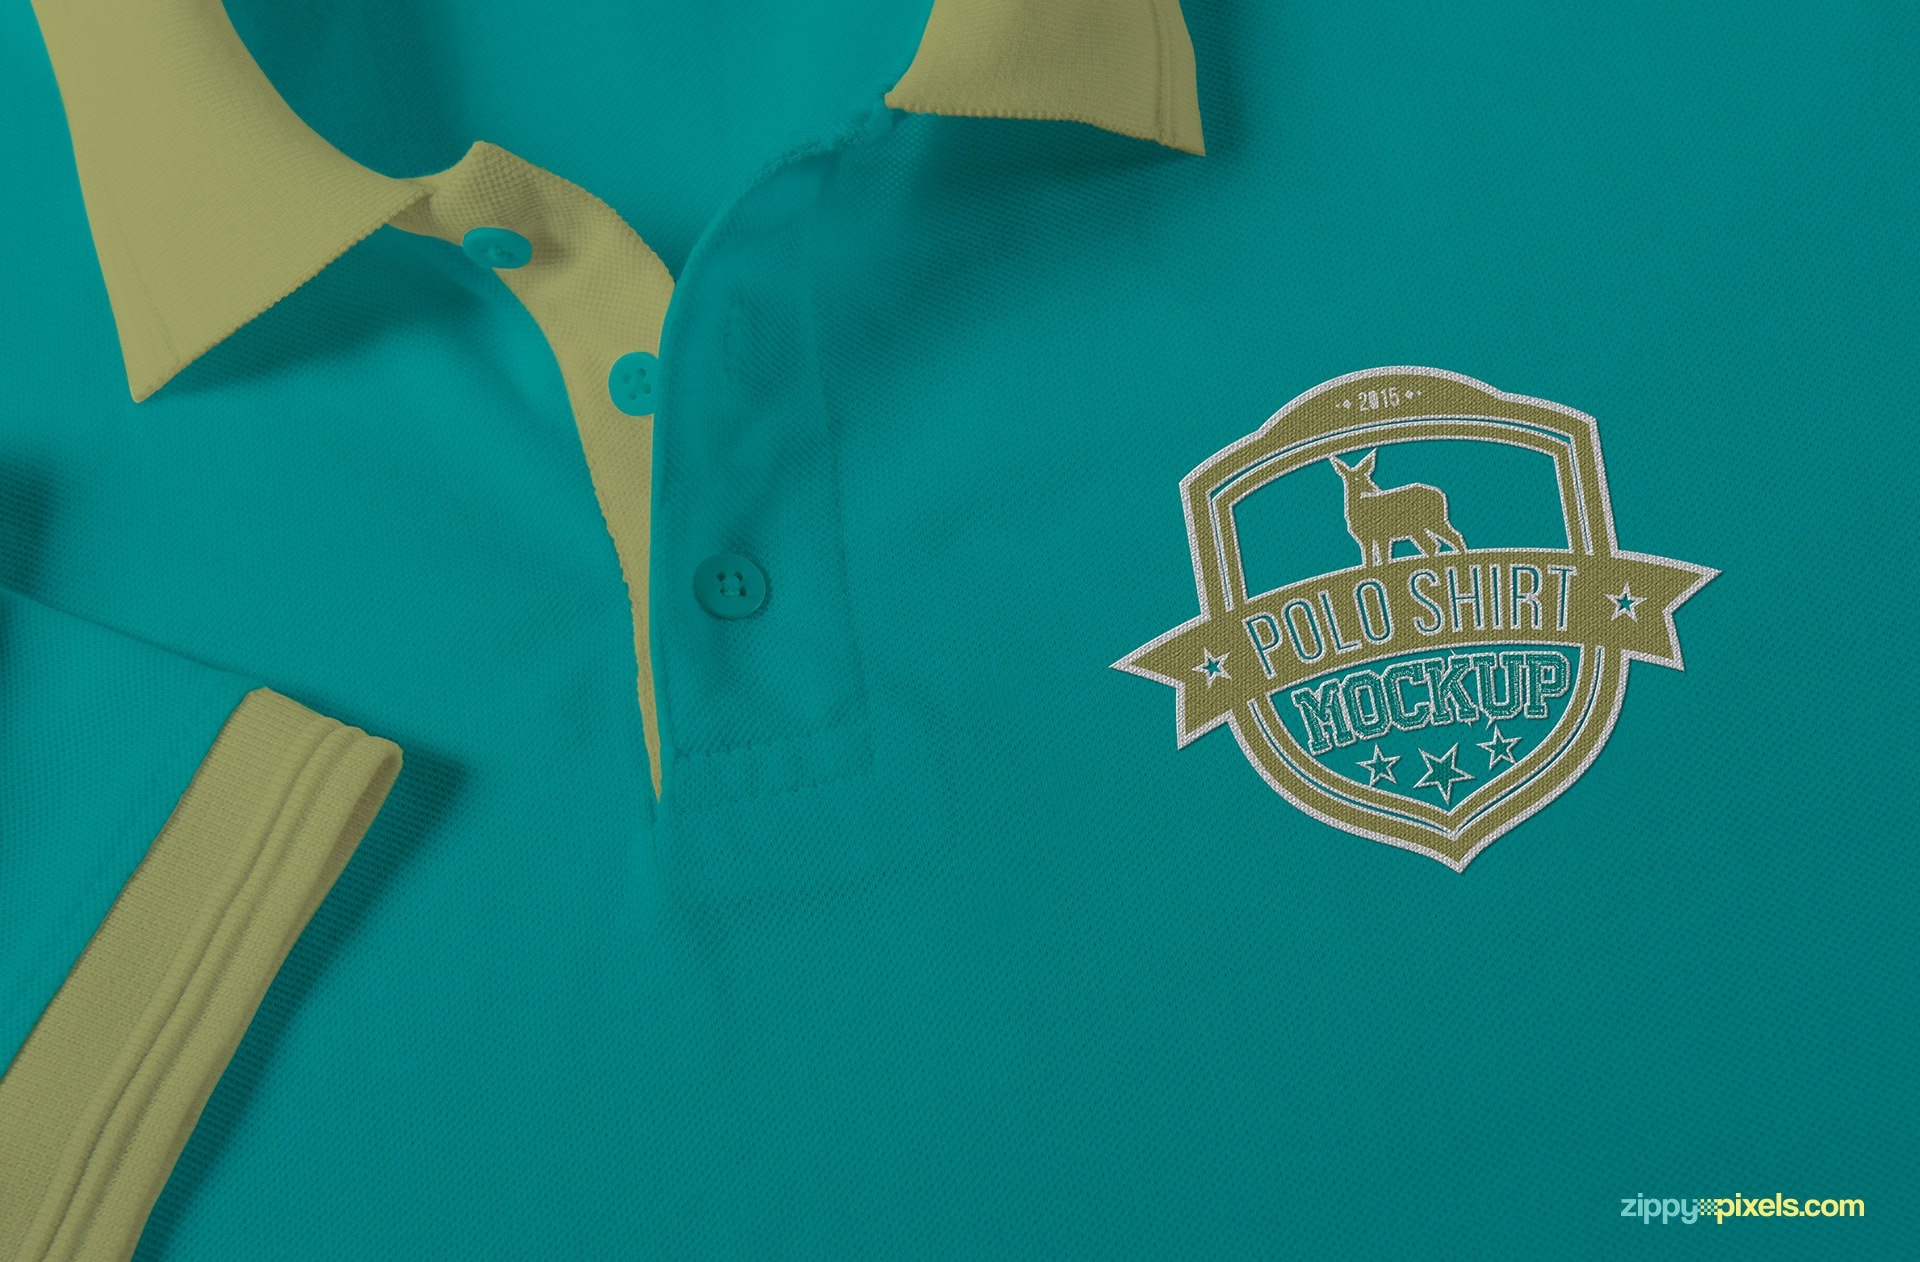 Polo shirt mockup PSD with customization options